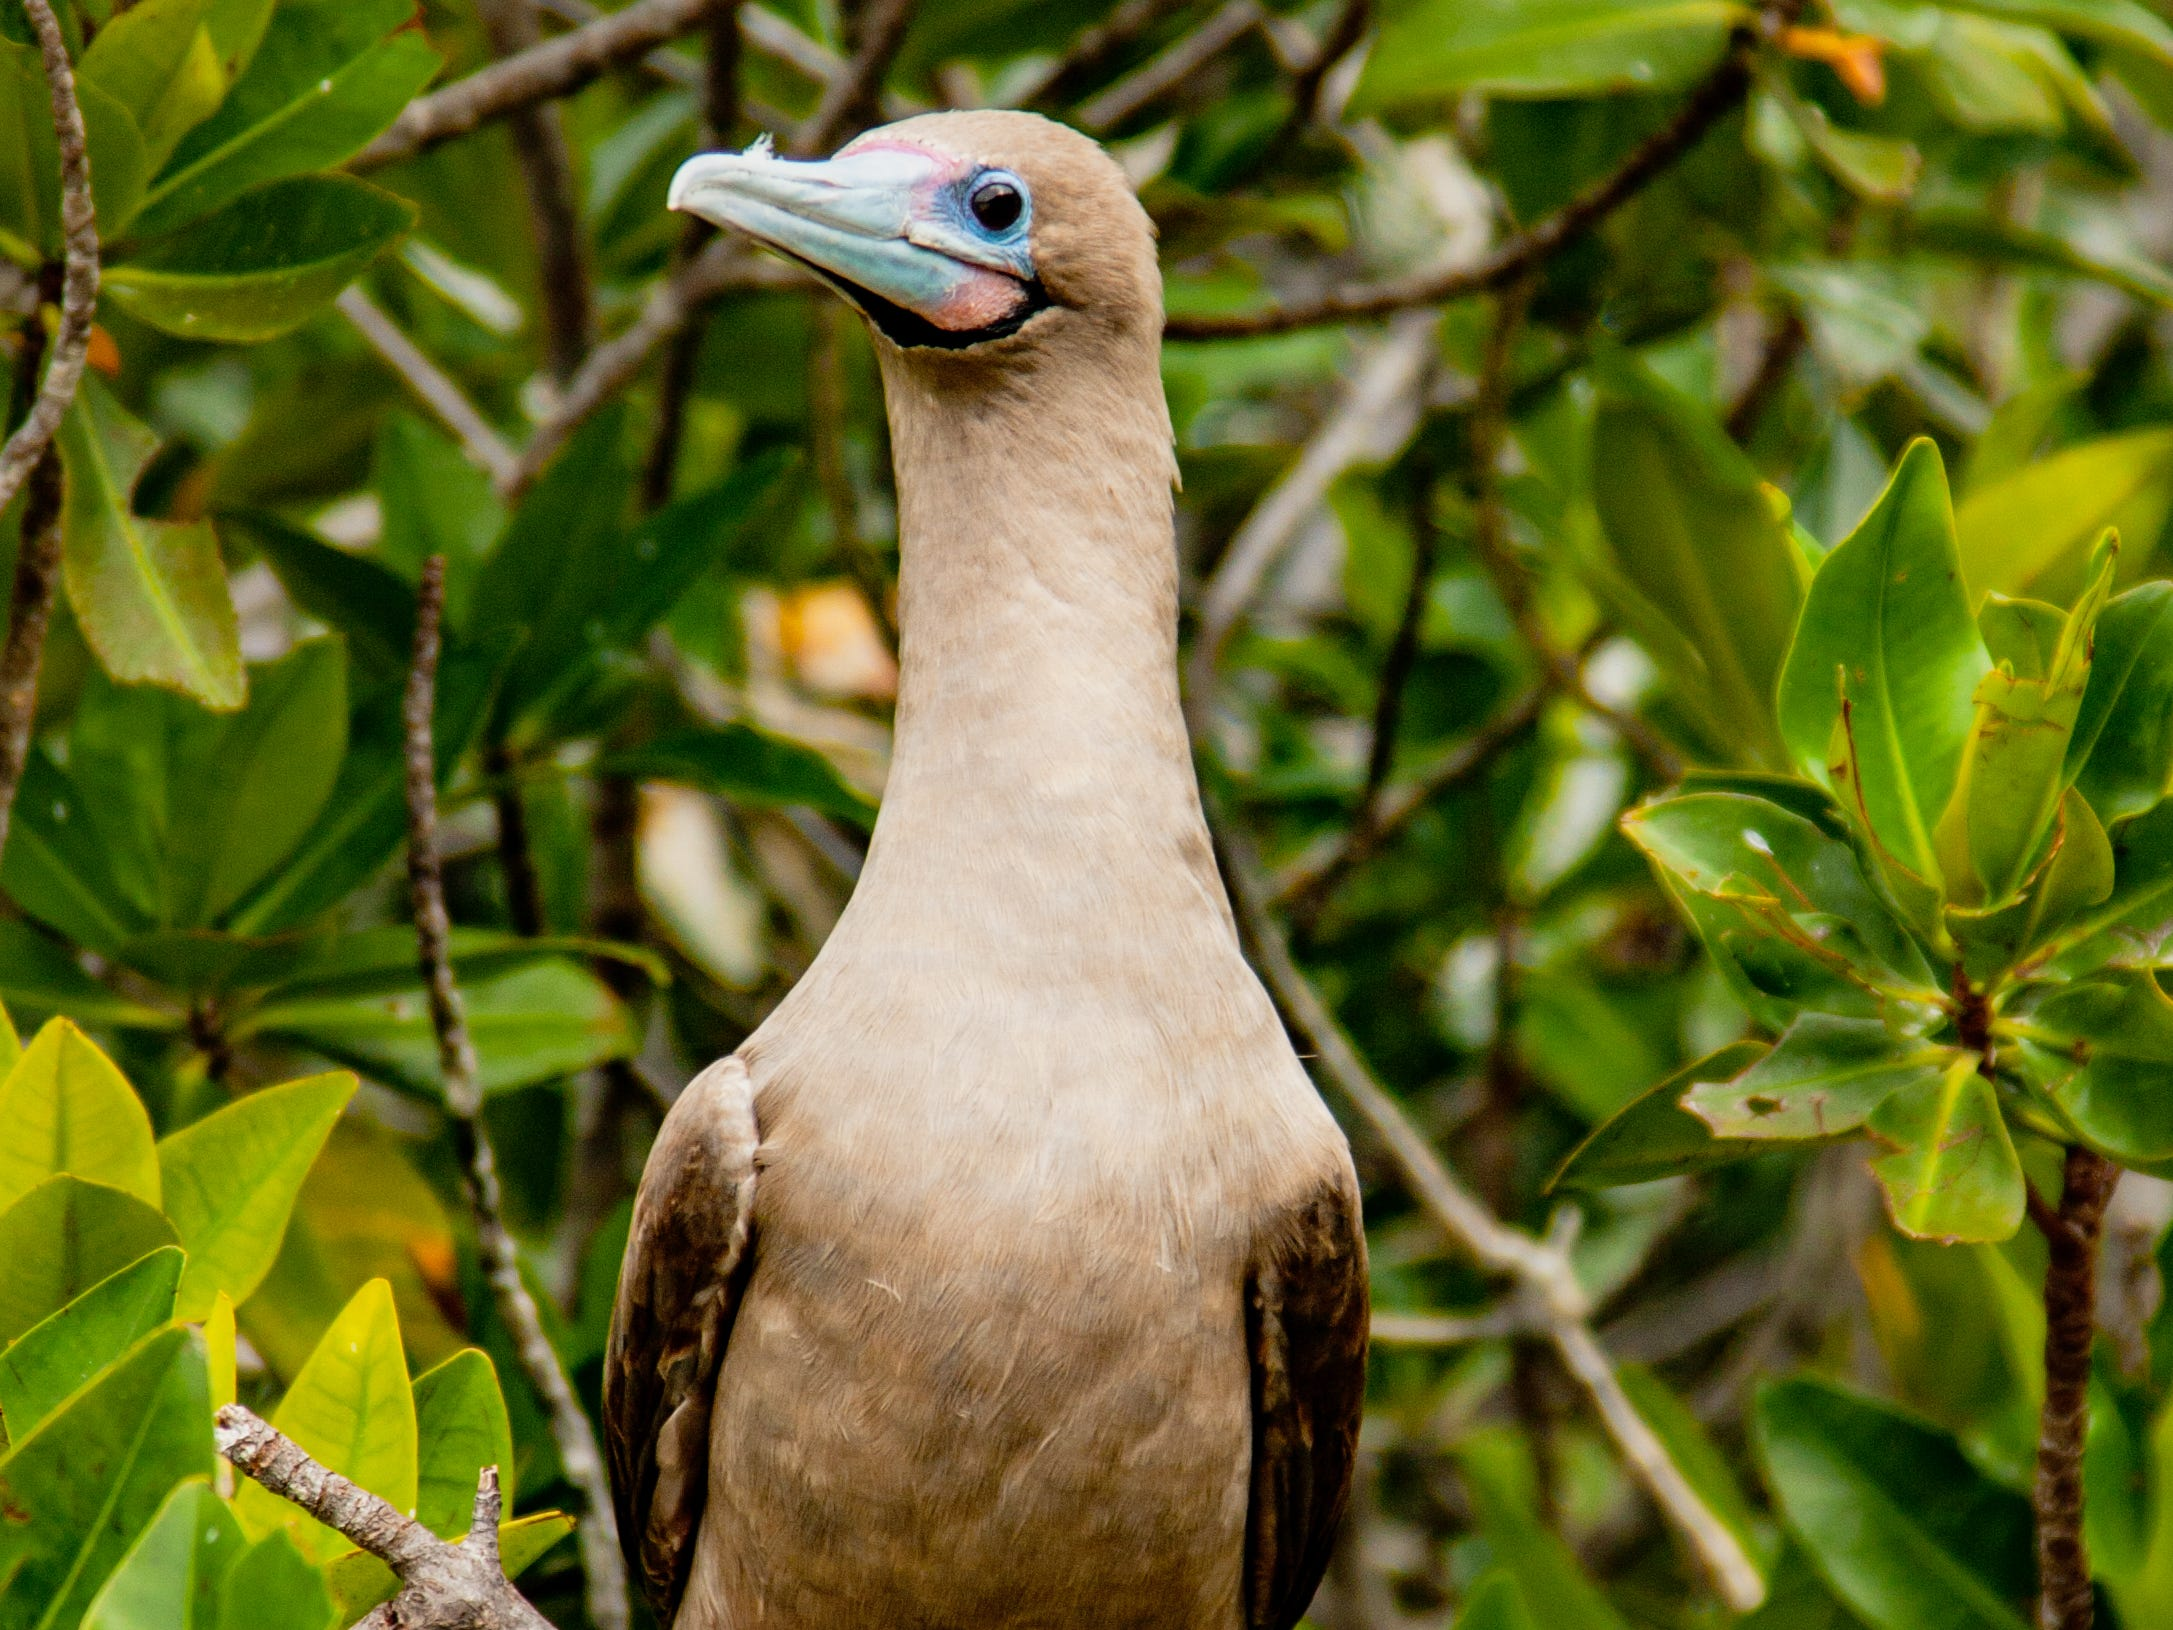 A red-footed booby in the Galapagos Islands, Ecuador.Ecuador